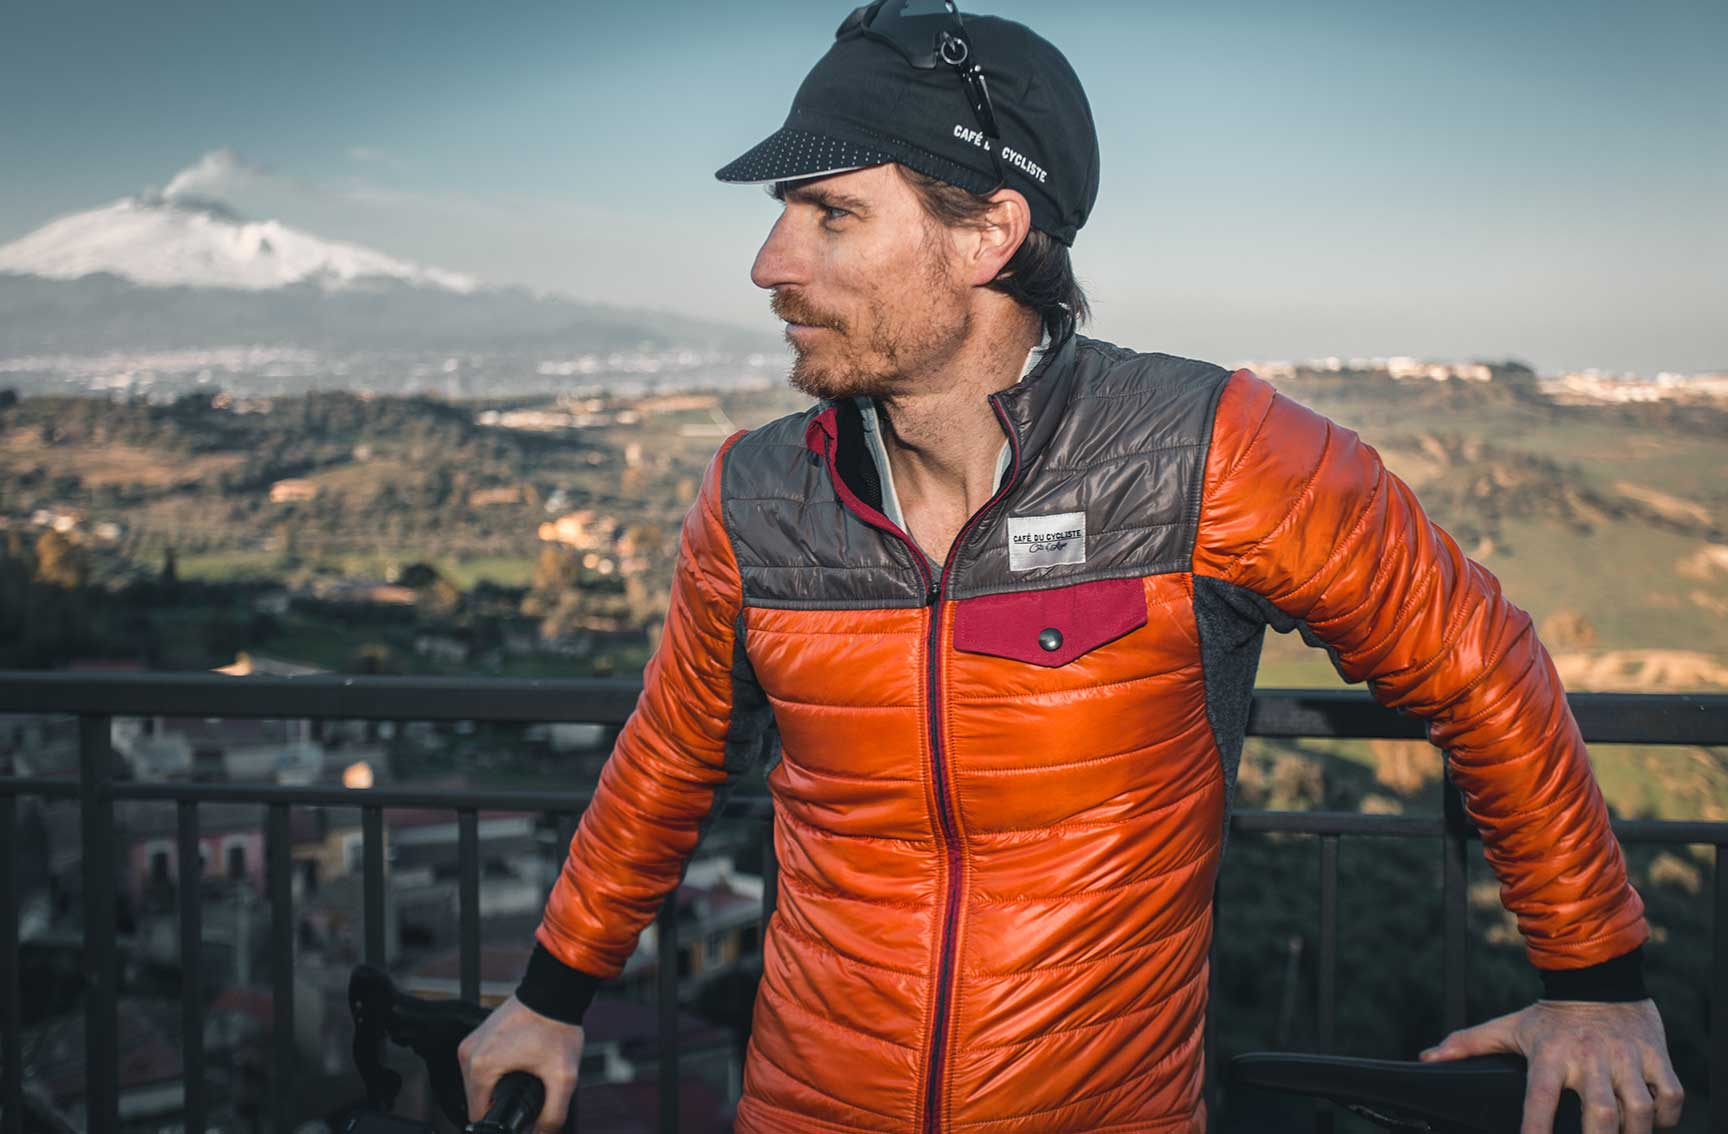 Cafe-du-cyclist-jacket-in-sicily